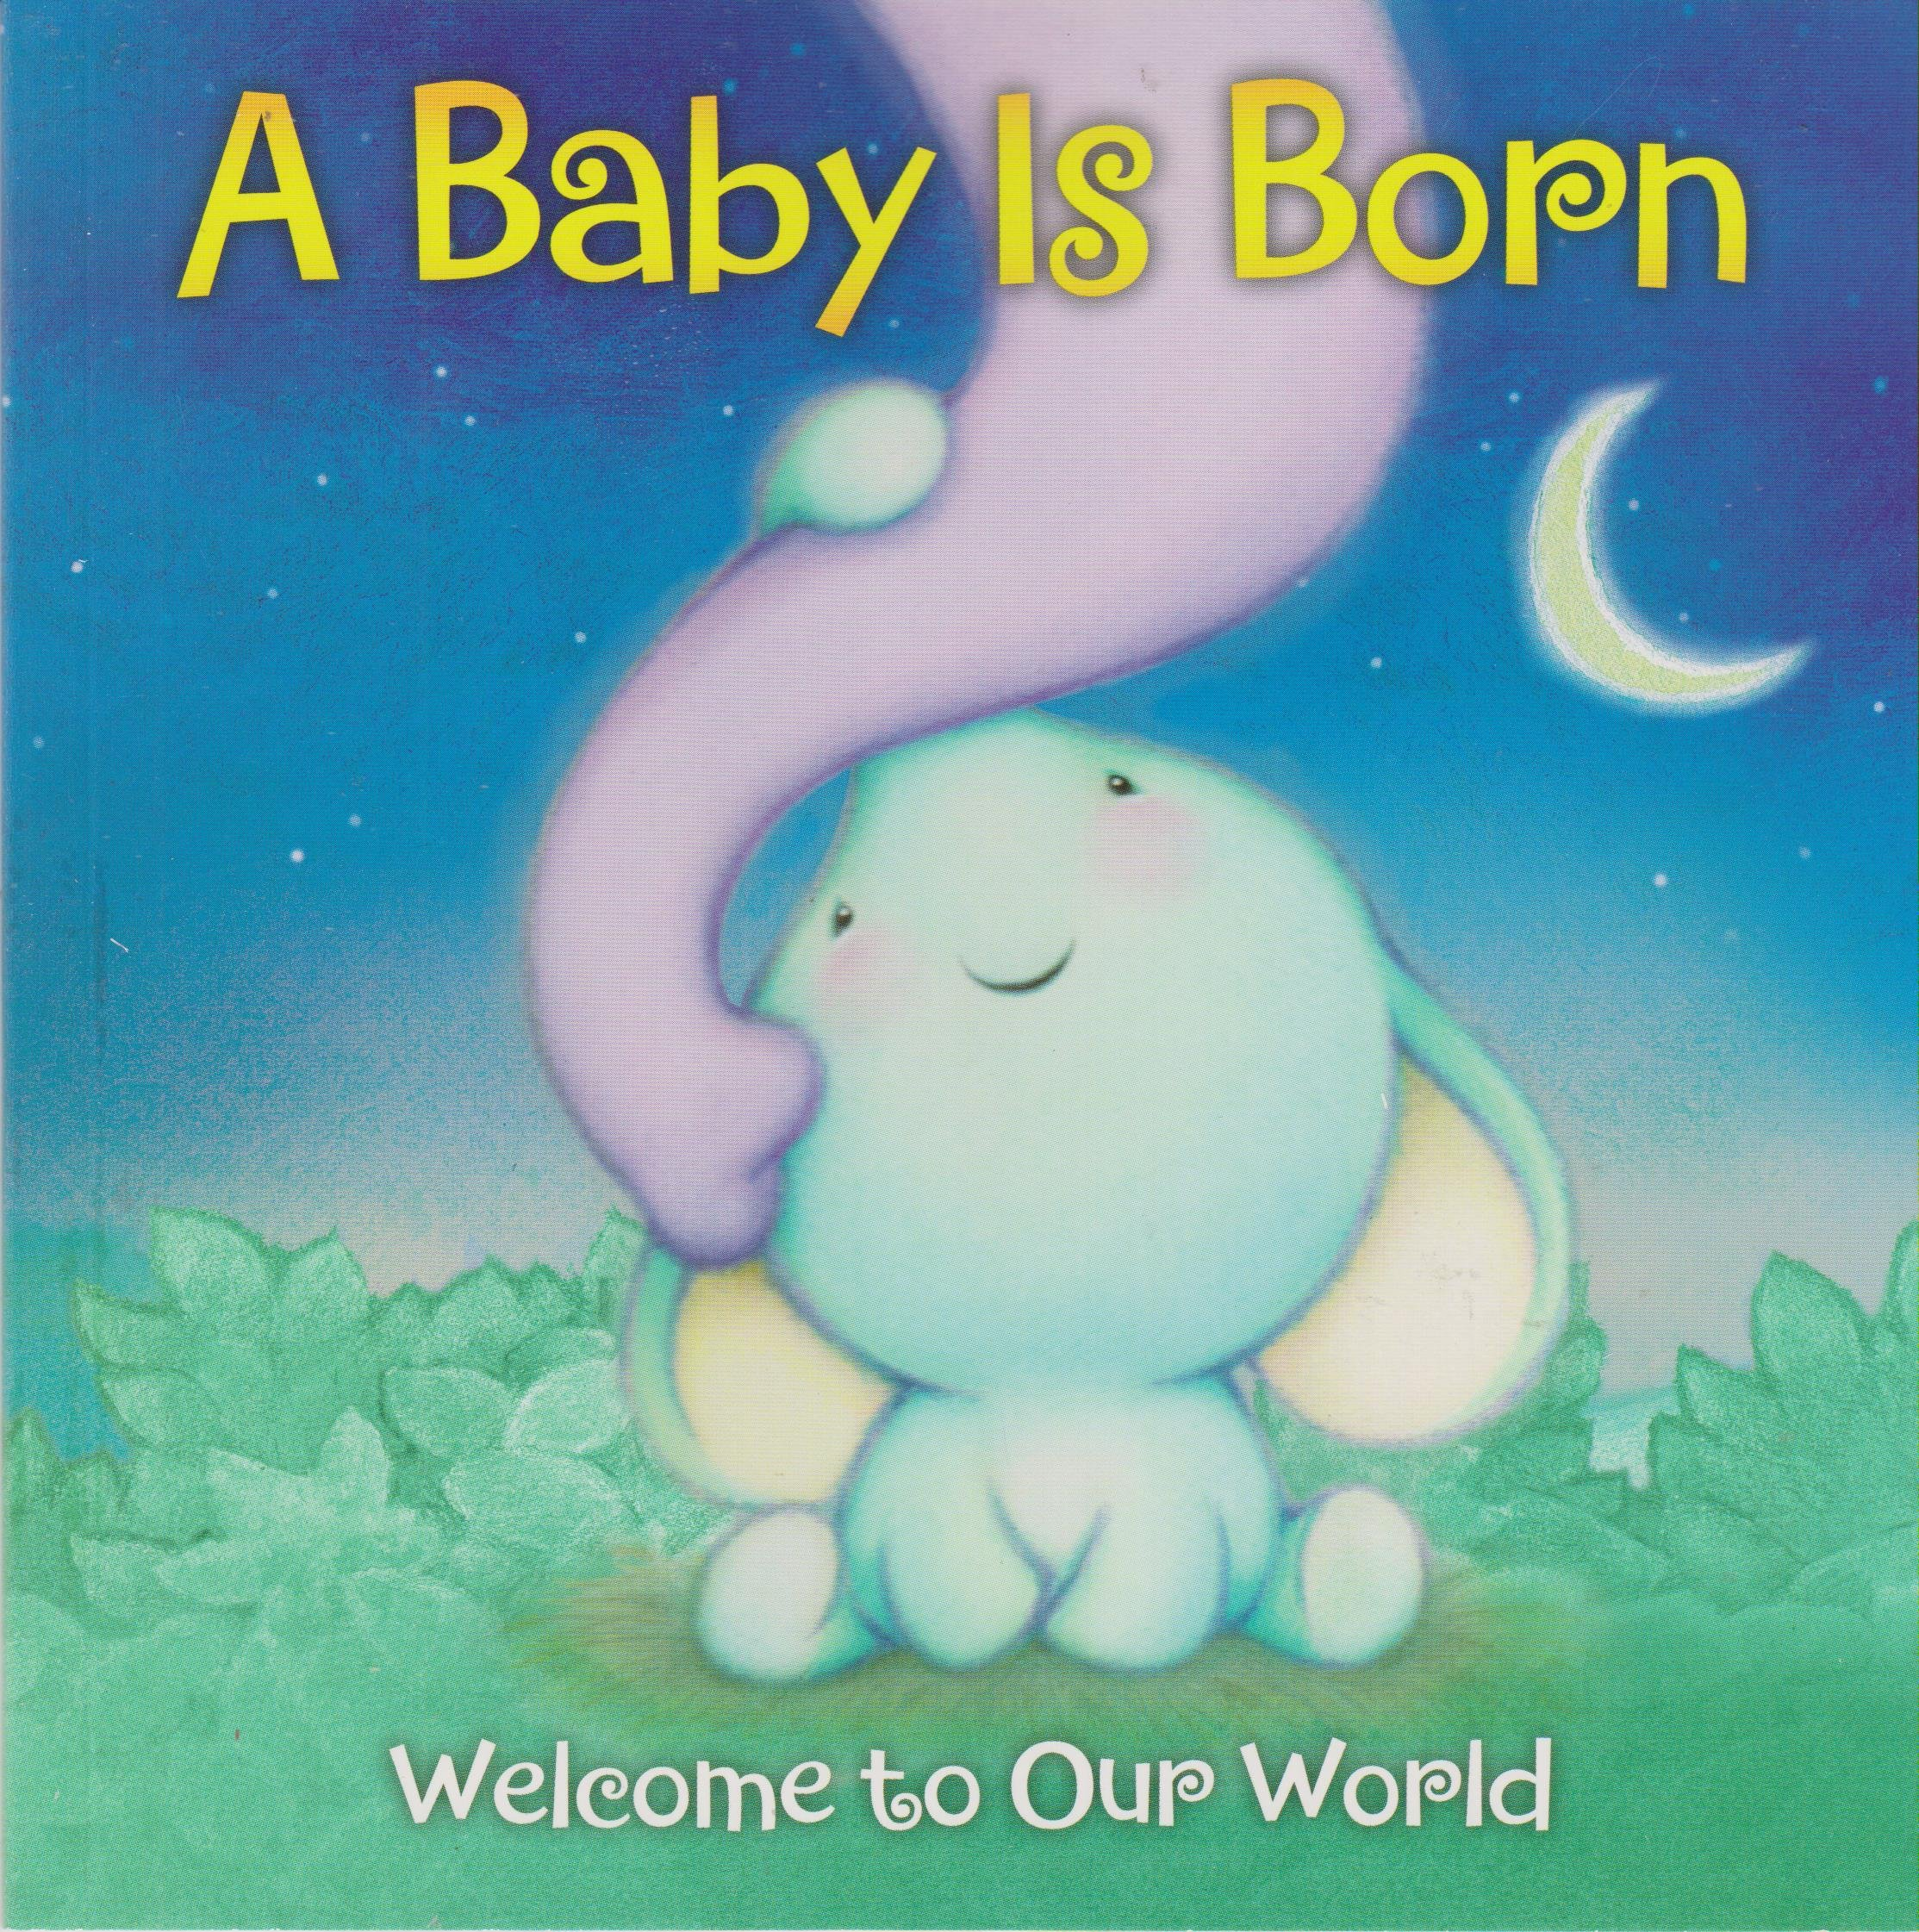 A Baby Is Born Welcome To Our World Melanie Zanoza Bartelme Steve Whitlow Amazon Com Books